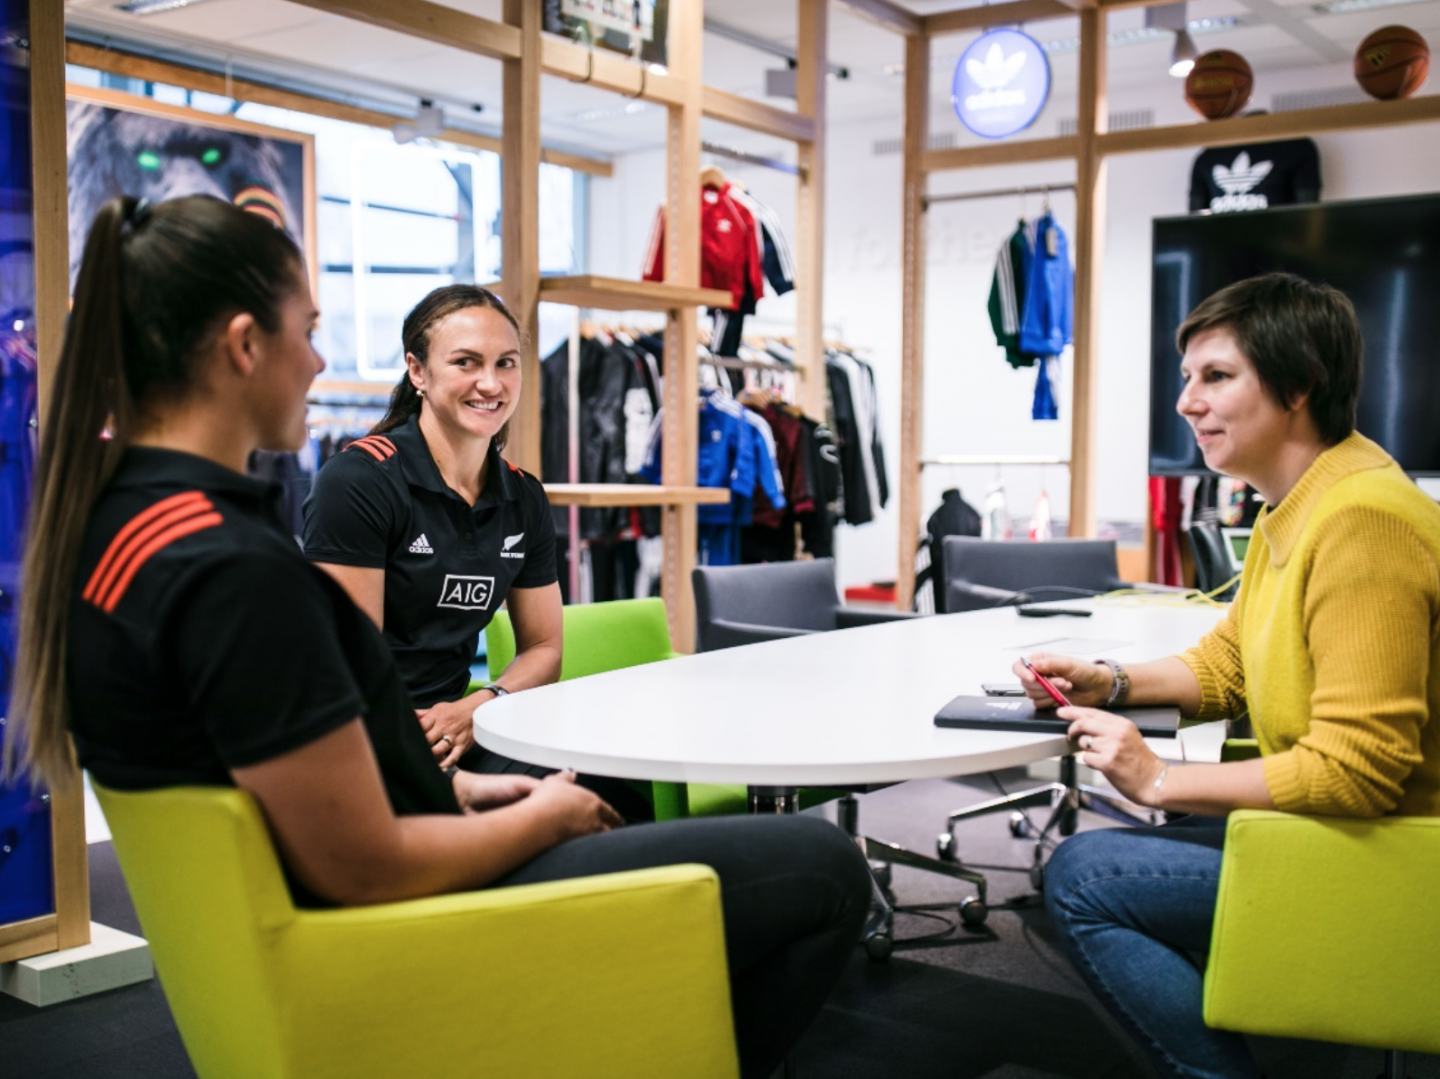 An interview with Les Elders and Eloise Blackwell from the women's rugby team Black Ferns